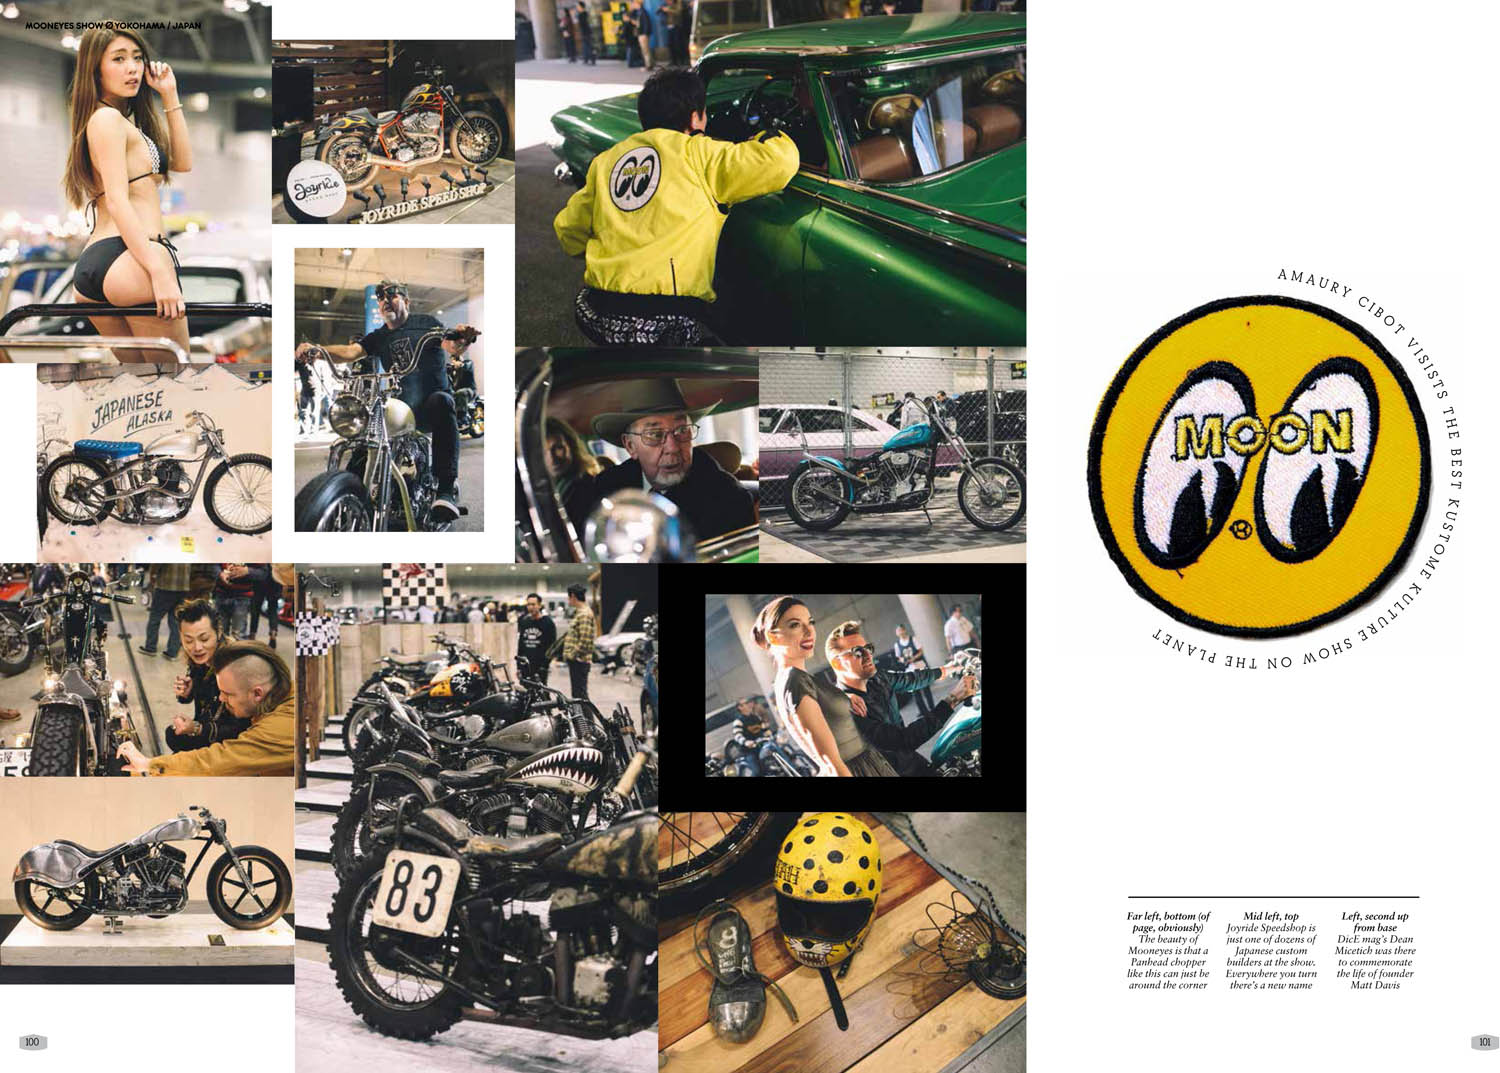 Mooneyes  - the best custom motorcycle show on the planet?